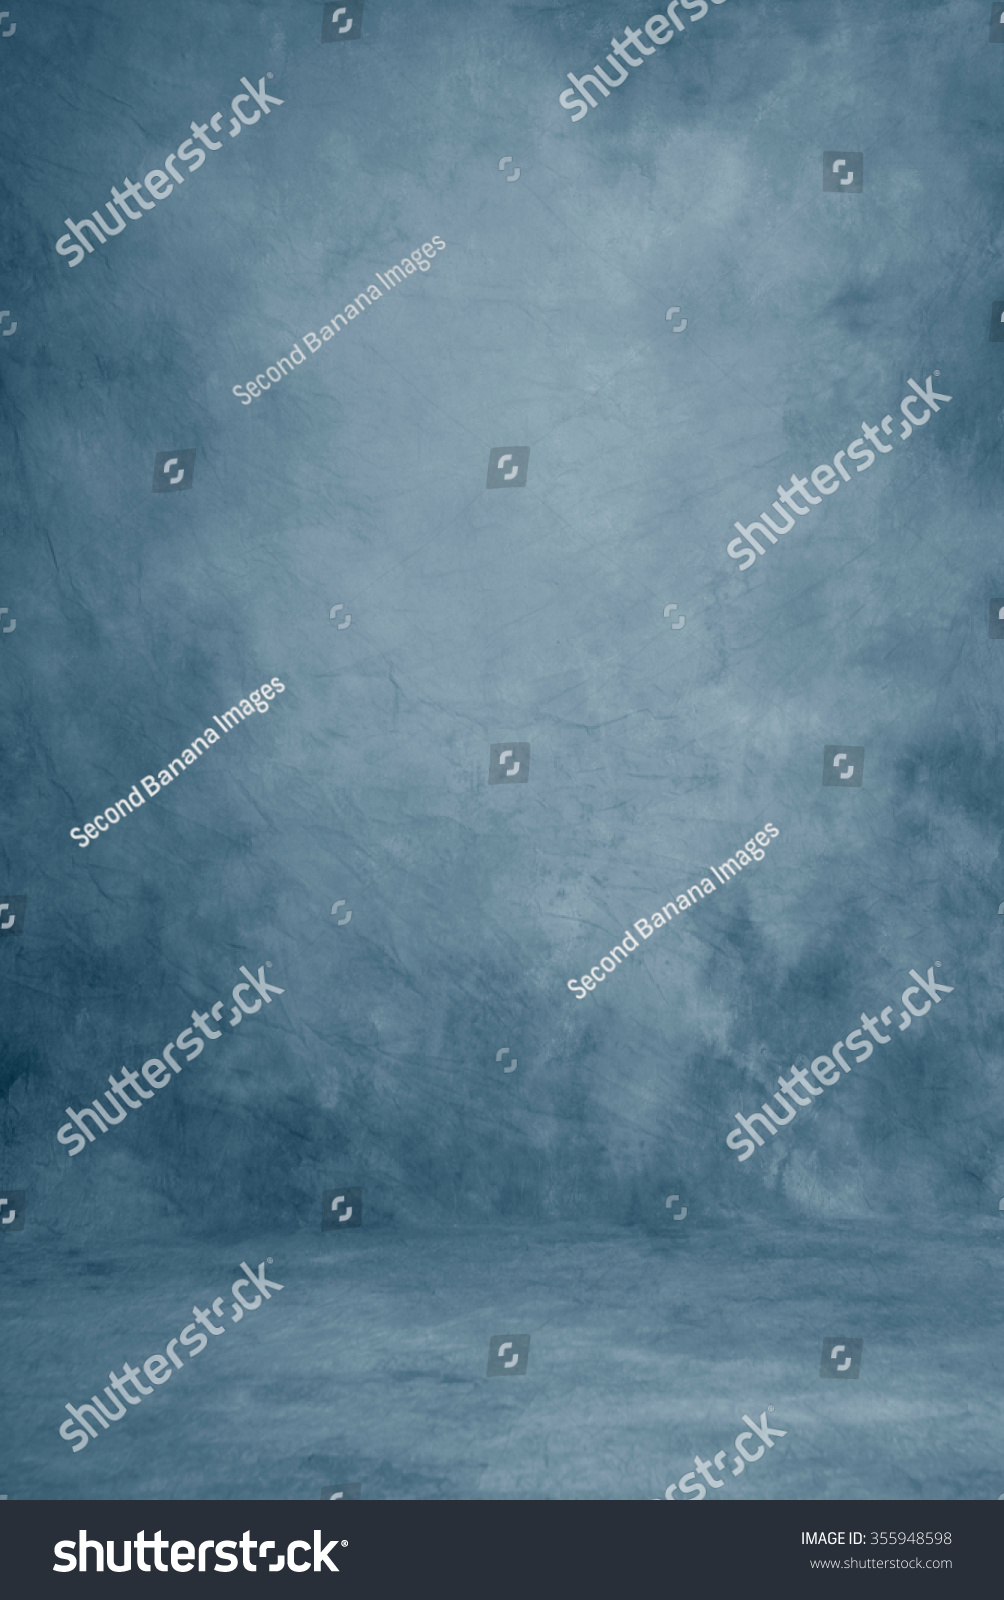 Painted canvas or muslin fabric cloth studio backdrop or background, suitable for use with portraits, products and concepts. Romantic strokes of blue shades. #355948598